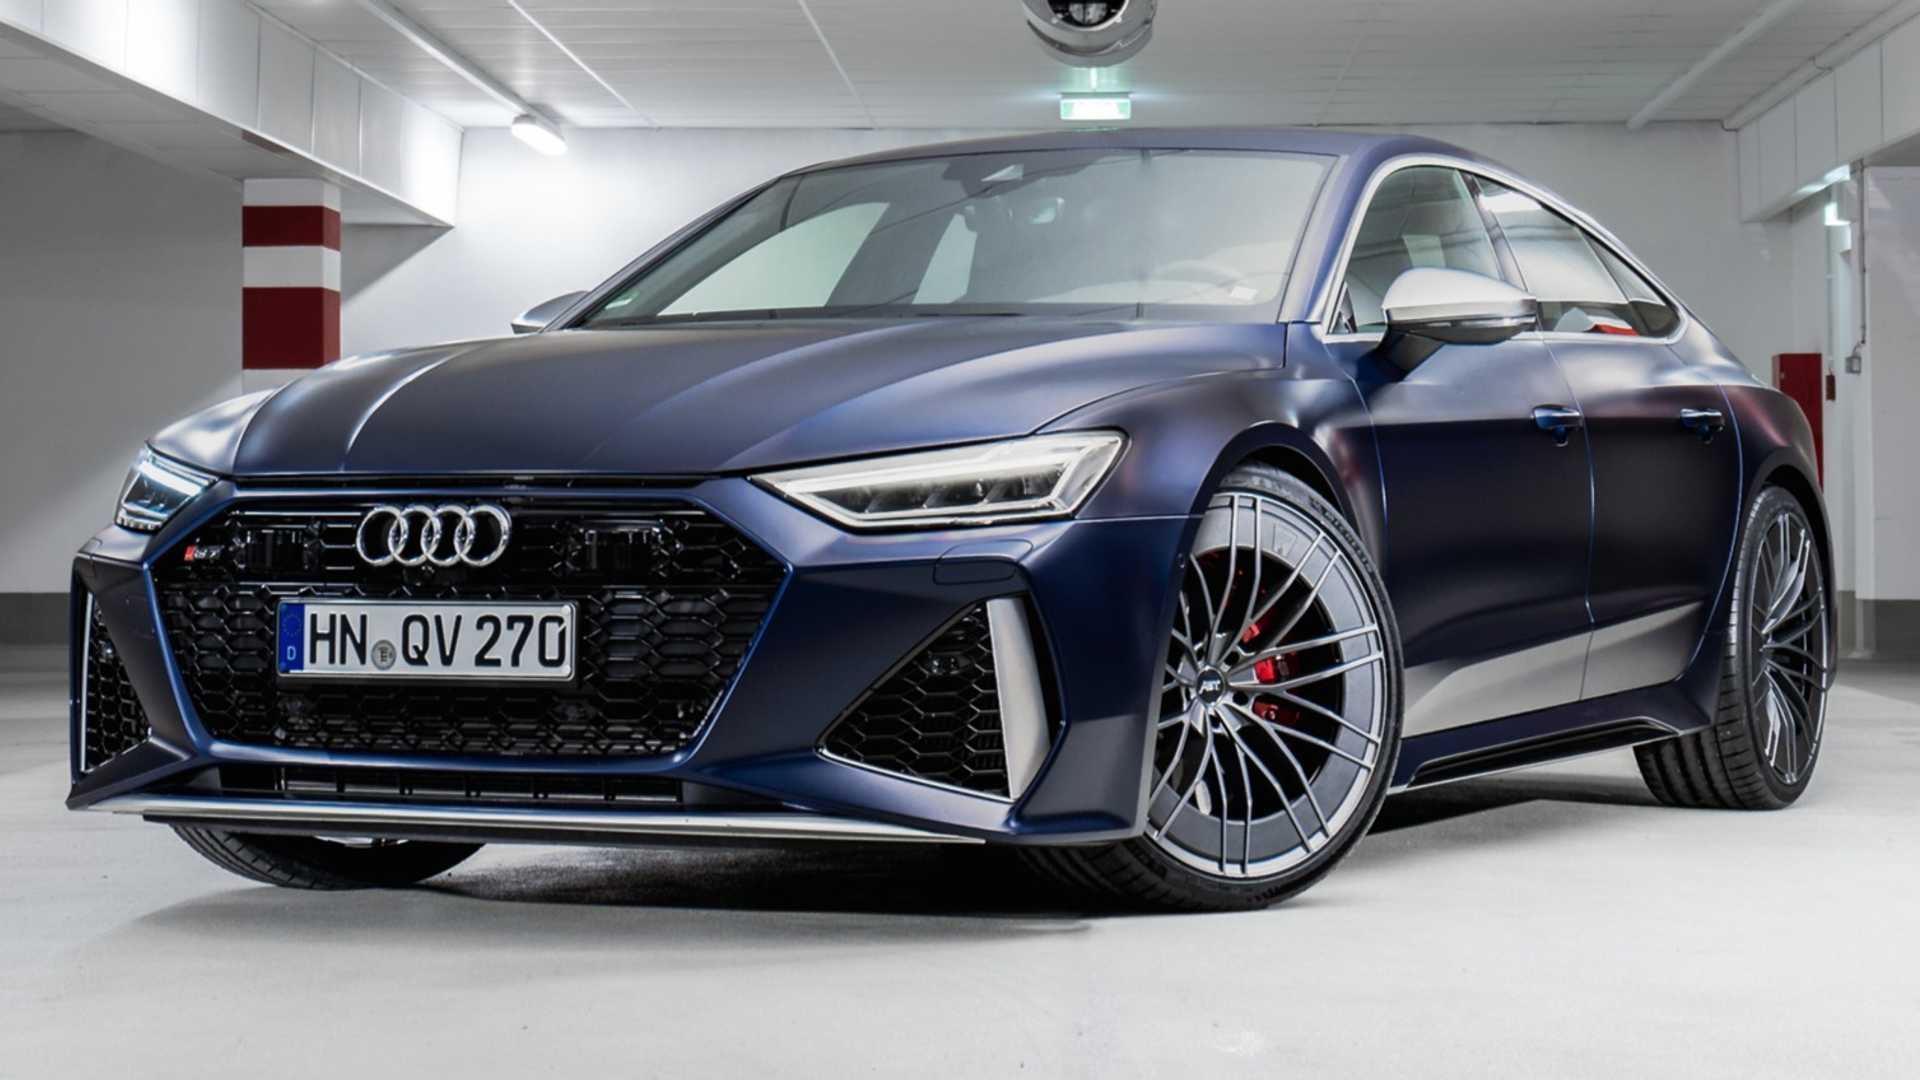 2020 Audi Rs7 By Abt Looks The Part With Aero Wheels Matte Paint